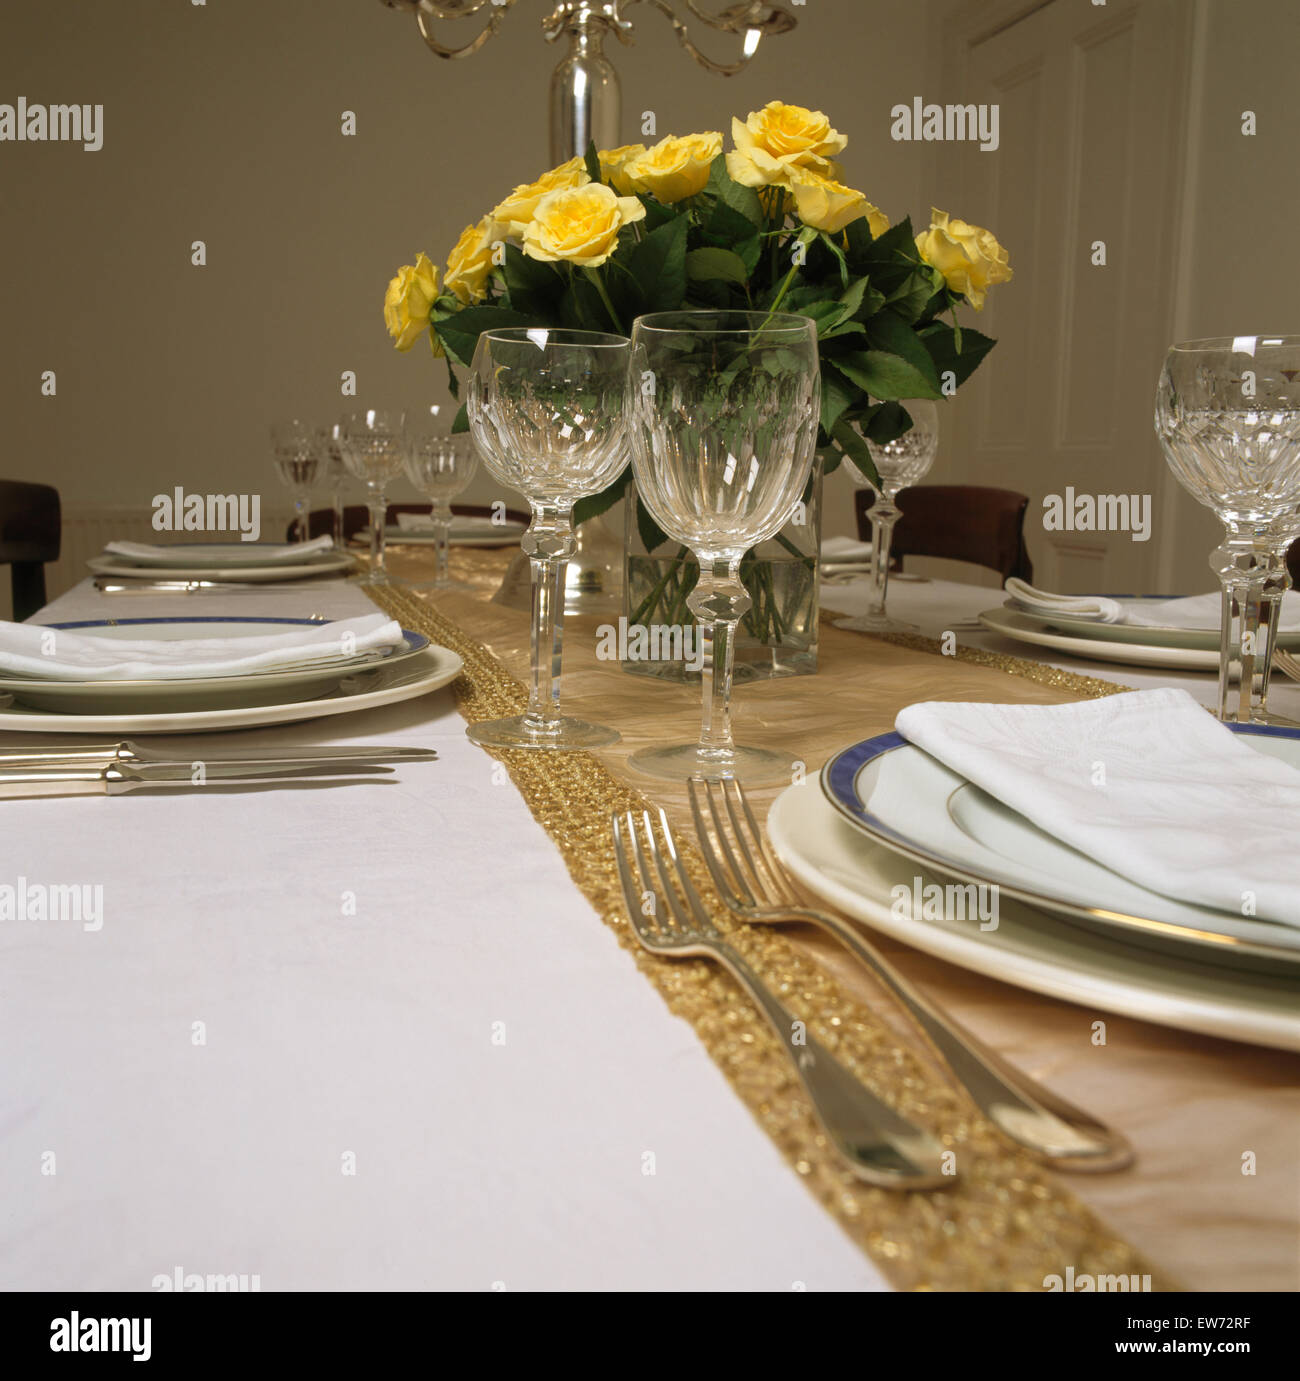 Close-up of a vase of yellow roses on table set for dinner with silver cutlery and white plates - Stock Image